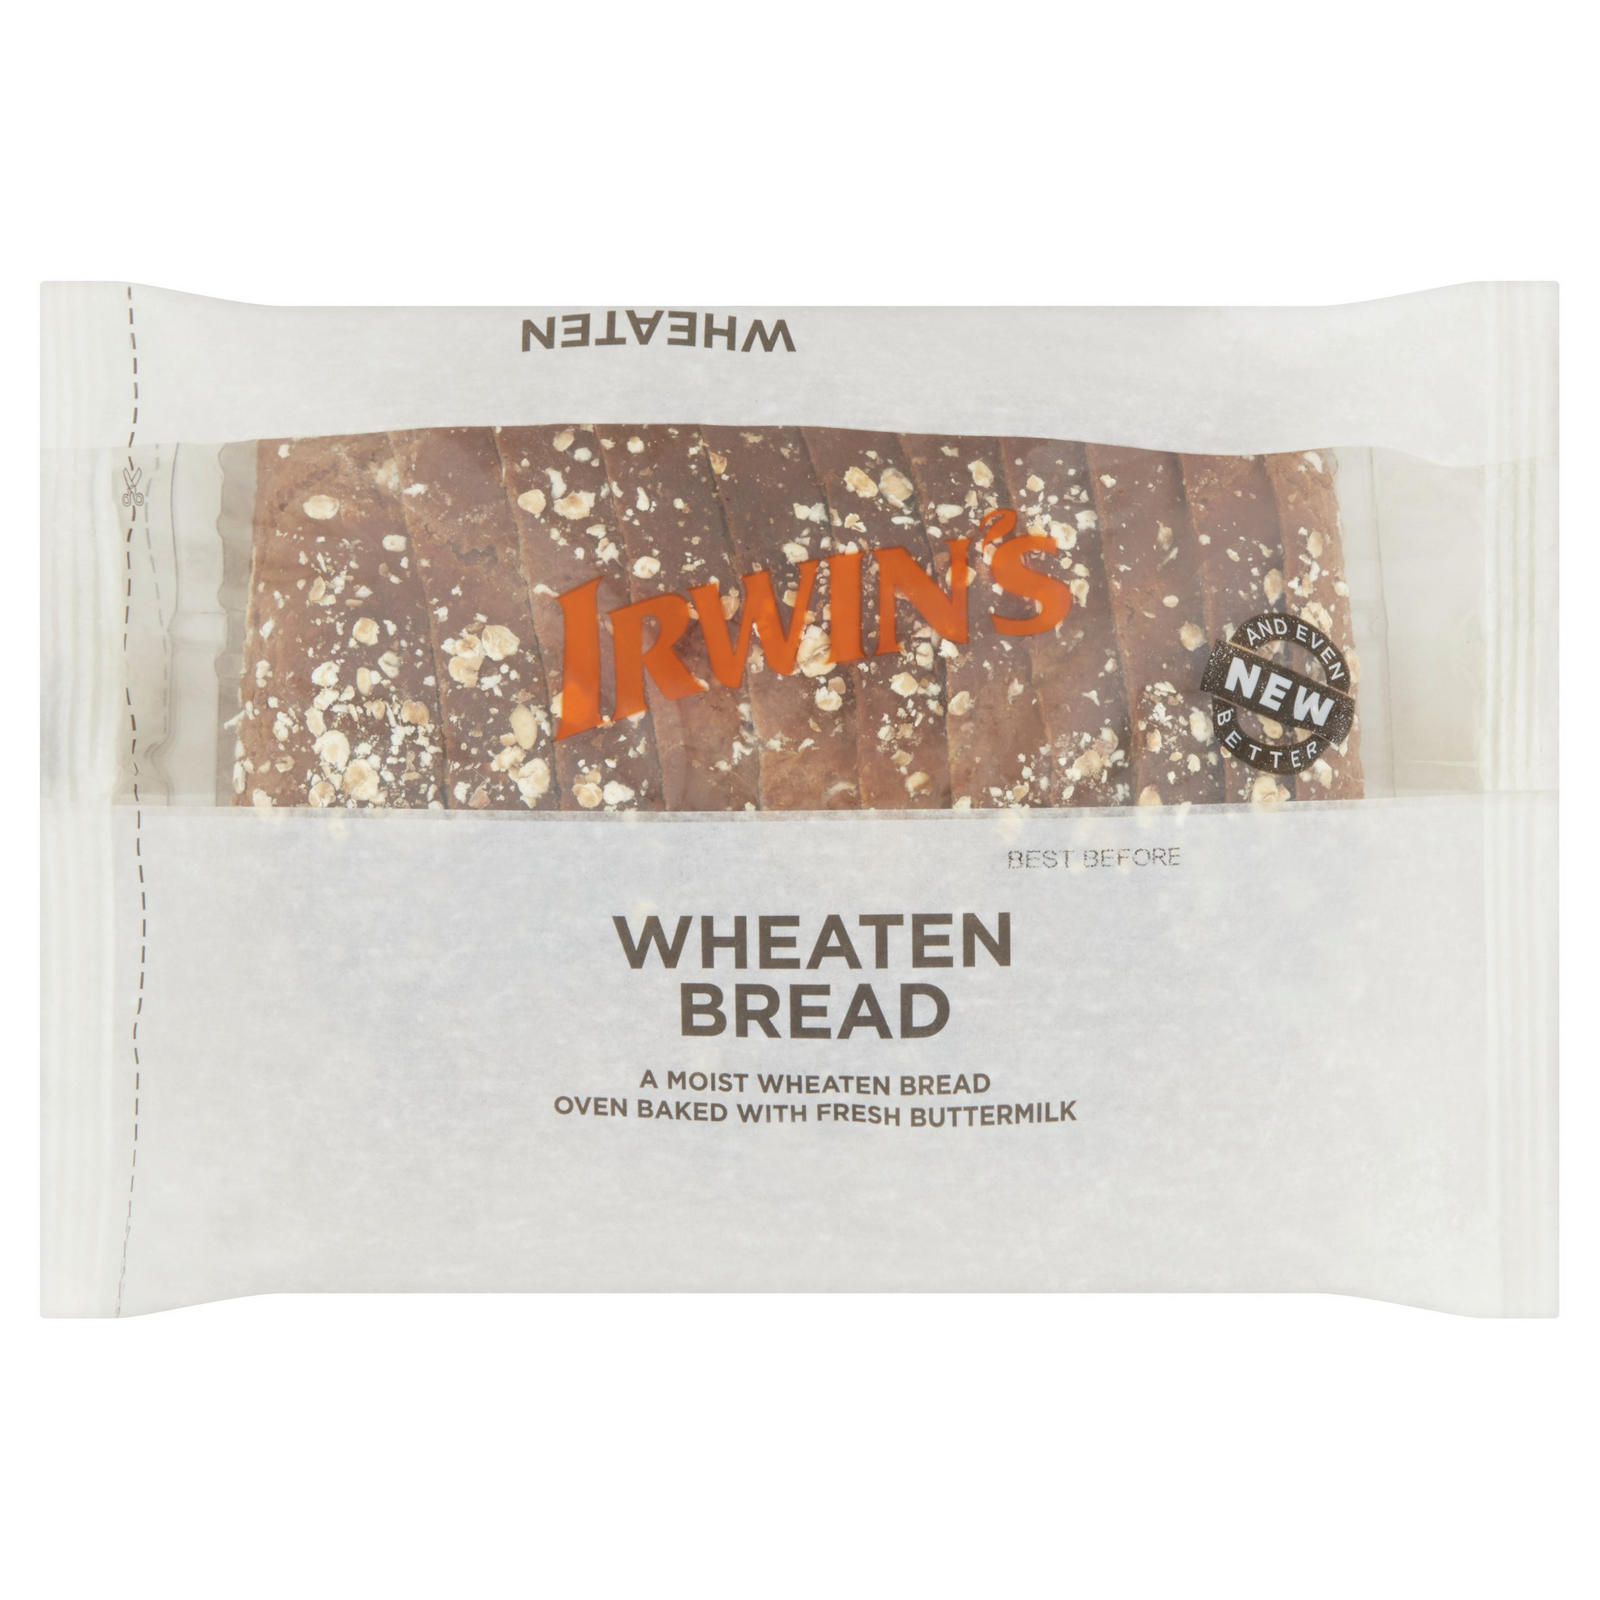 Irwin's Wheaten Bread 450g | Brown & Wholemeal Bread | Iceland Foods